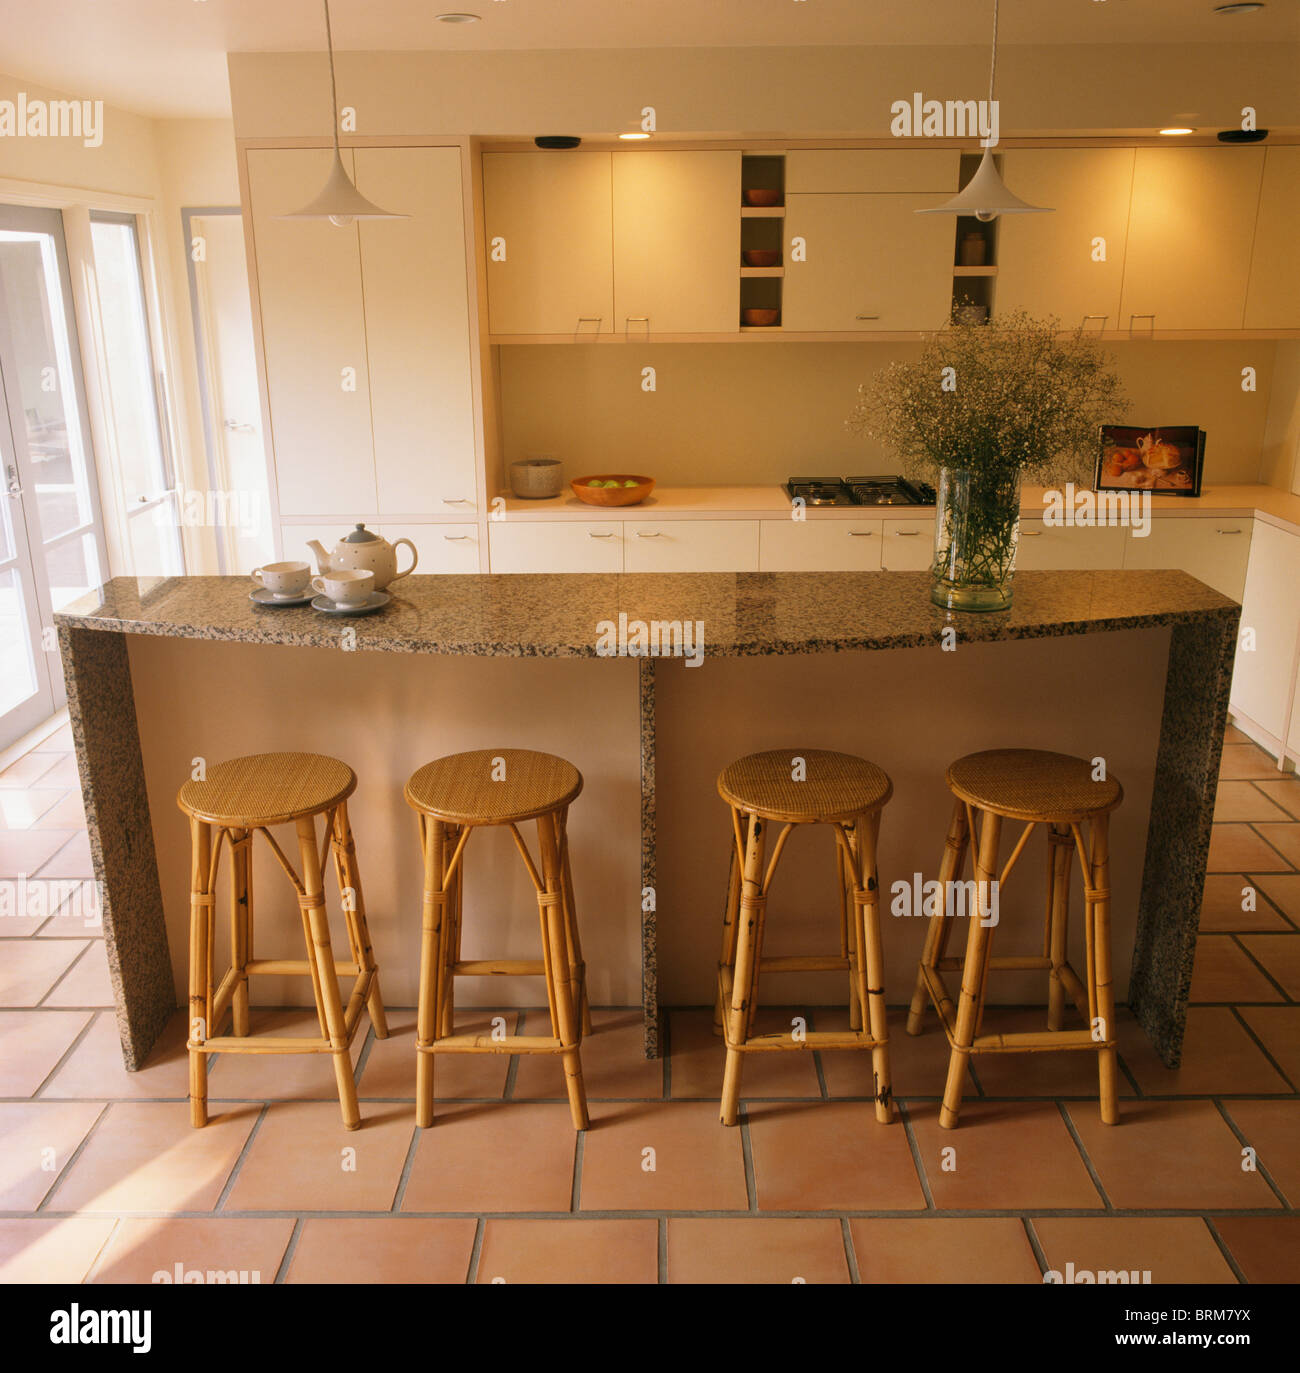 modern kitchen stools curtain rods cane at breakfast bar on granite topped island unit in with down lighting above cupboards